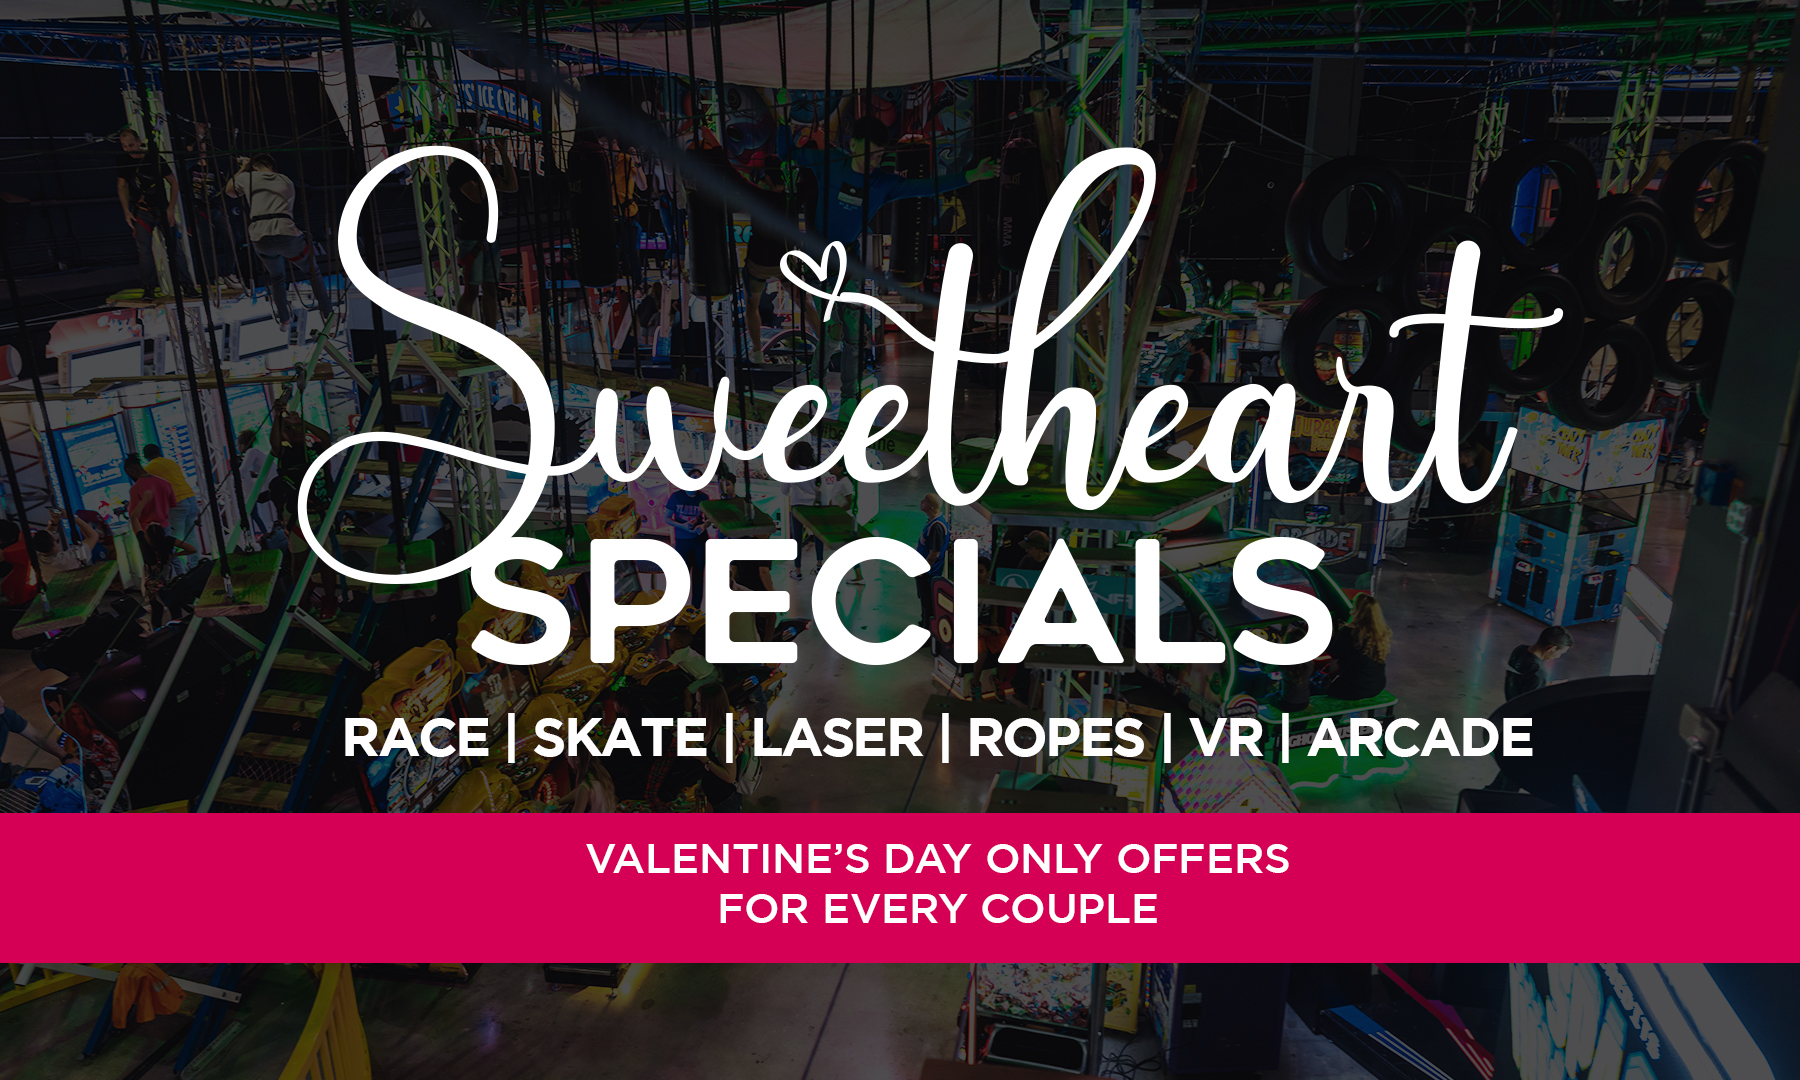 Valentines Day Special for Couples